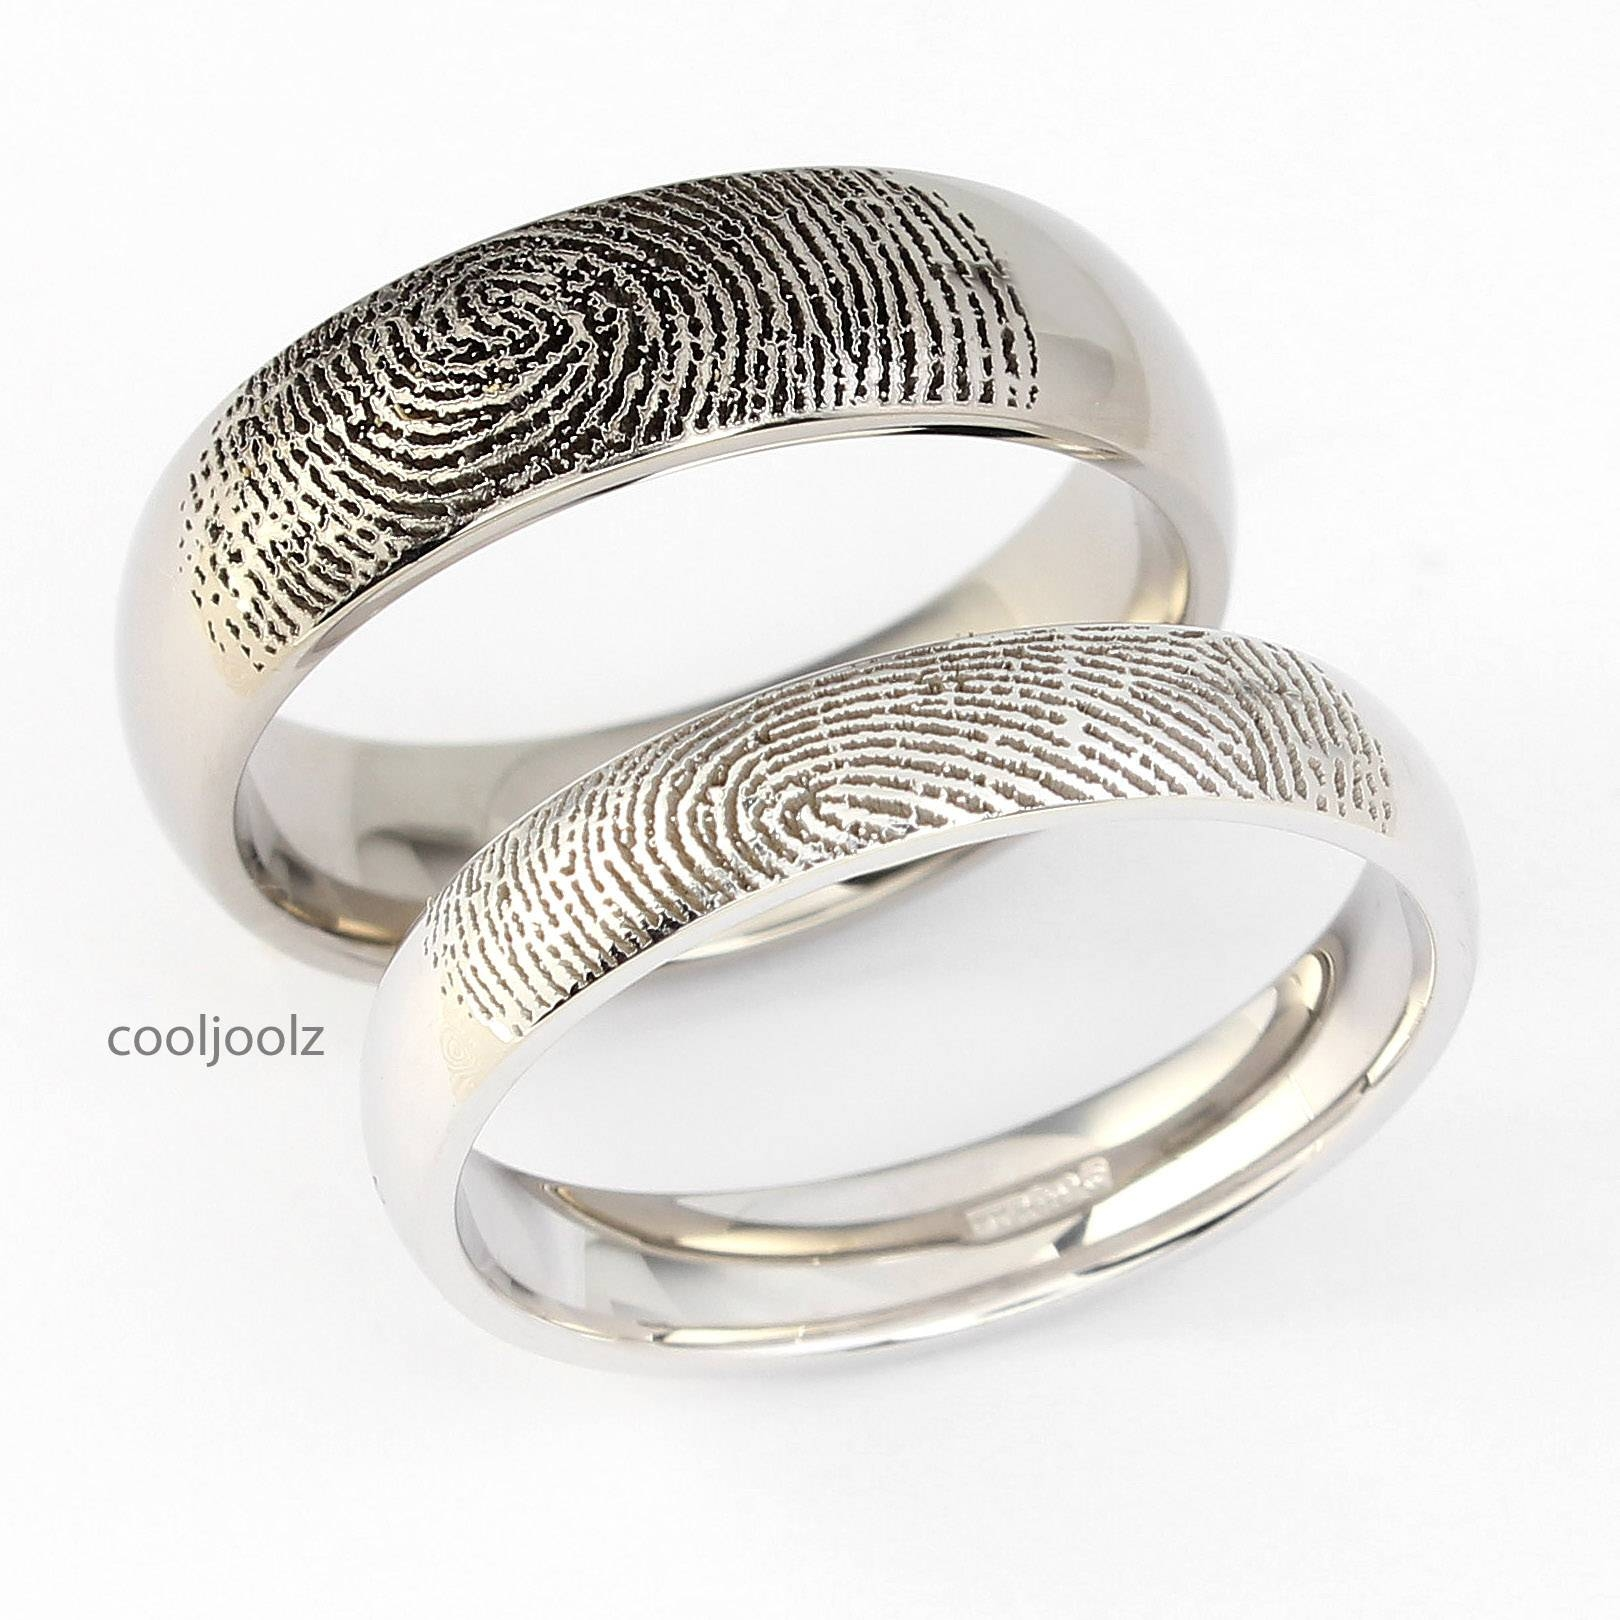 love jewelryrider designs fingerprint rings wedding with bands shop ring fingerprintwedding